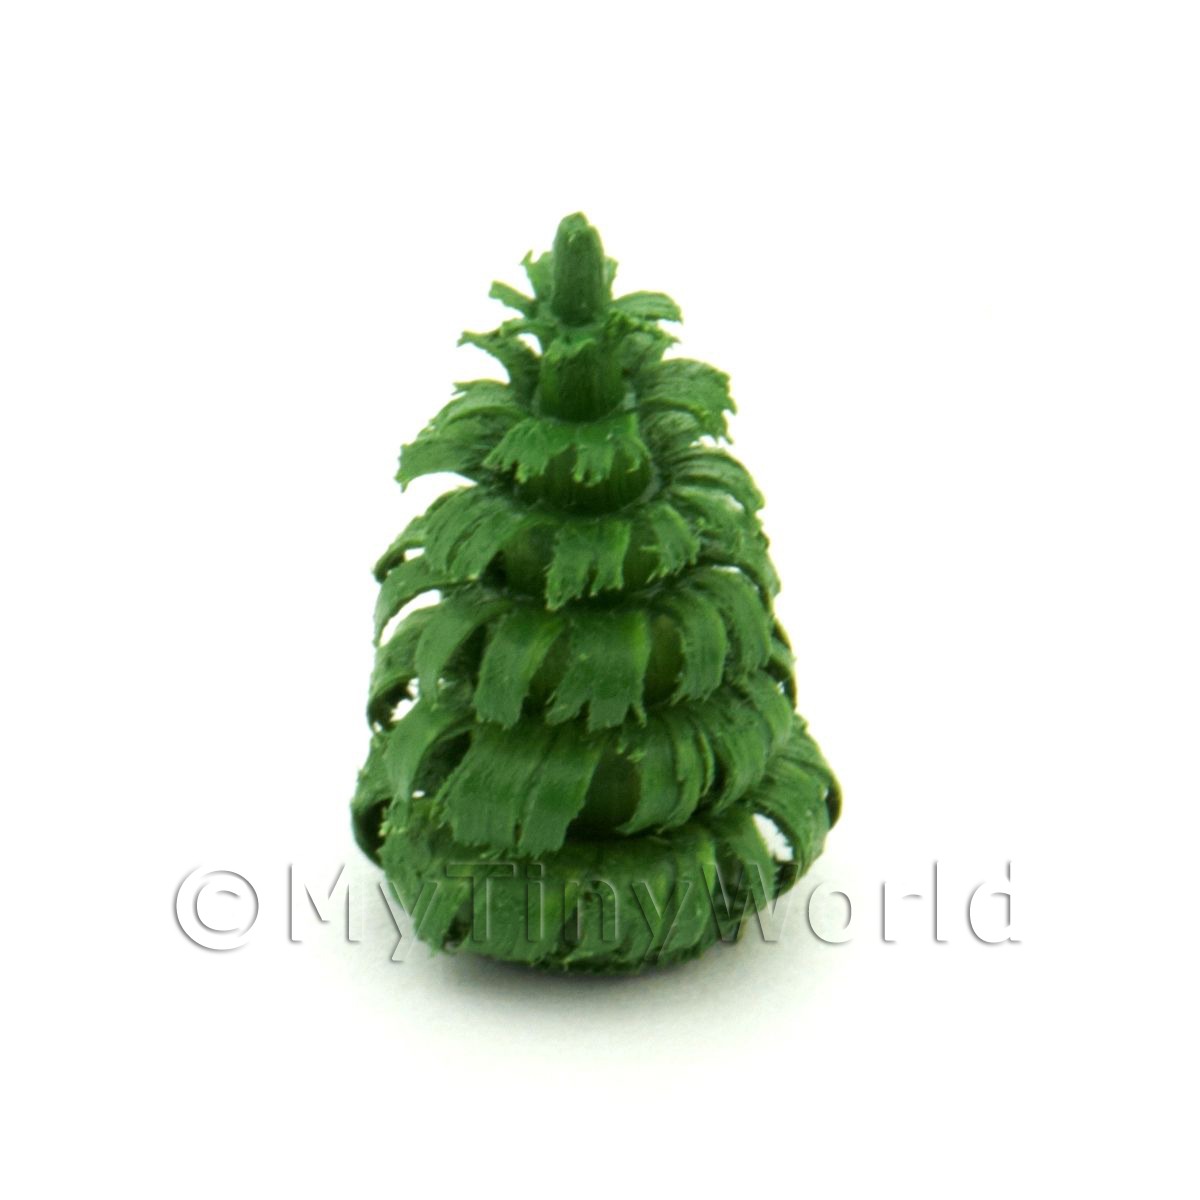 Dolls House Miniature 15mm Green Tree